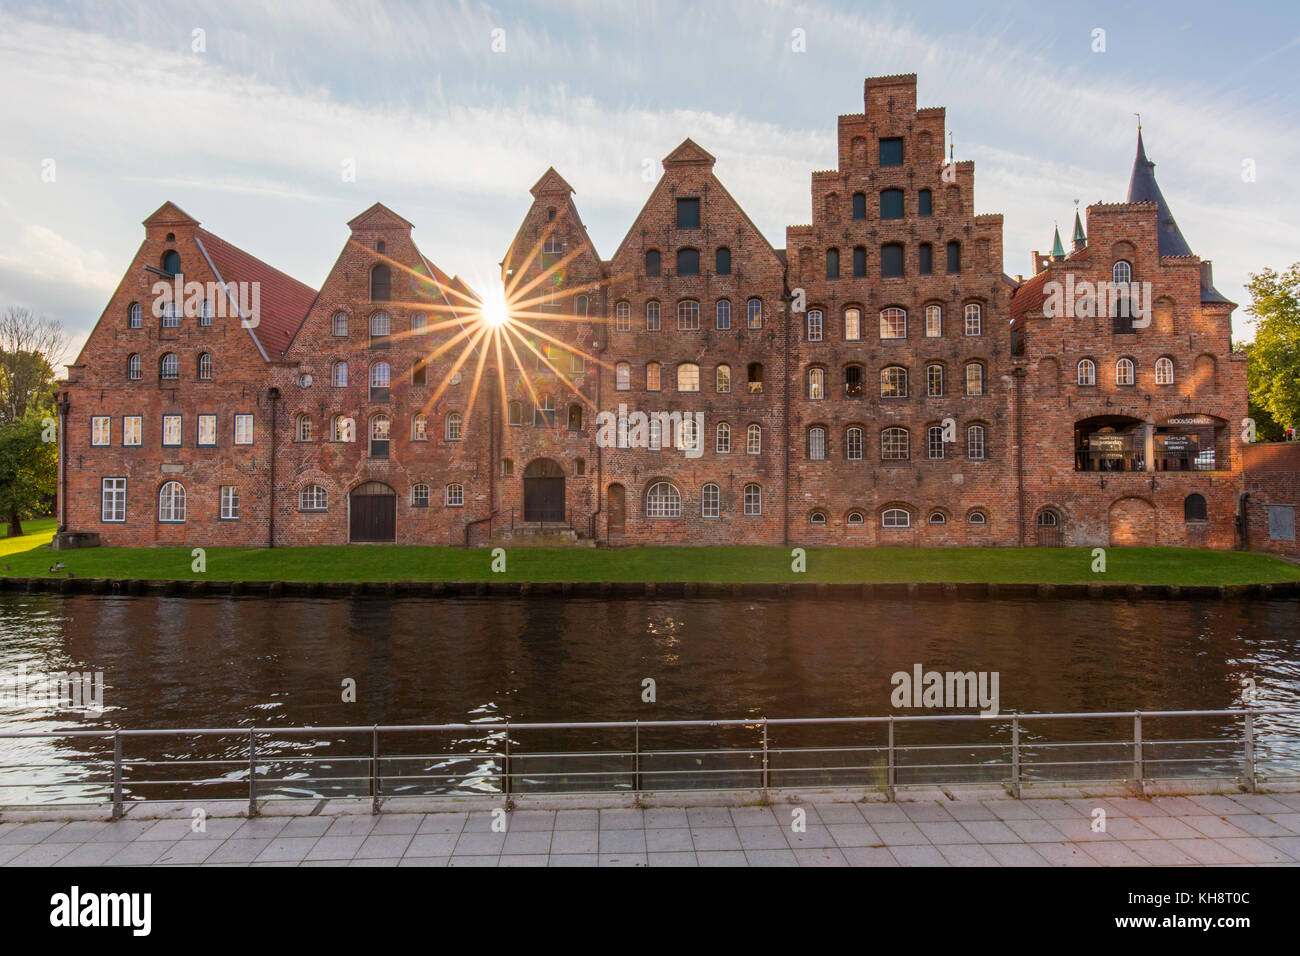 Salzspeicher / salt storehouses along the Upper Trave River in the Hanseatic town Lübeck / Luebeck, Schleswig - Stock Image